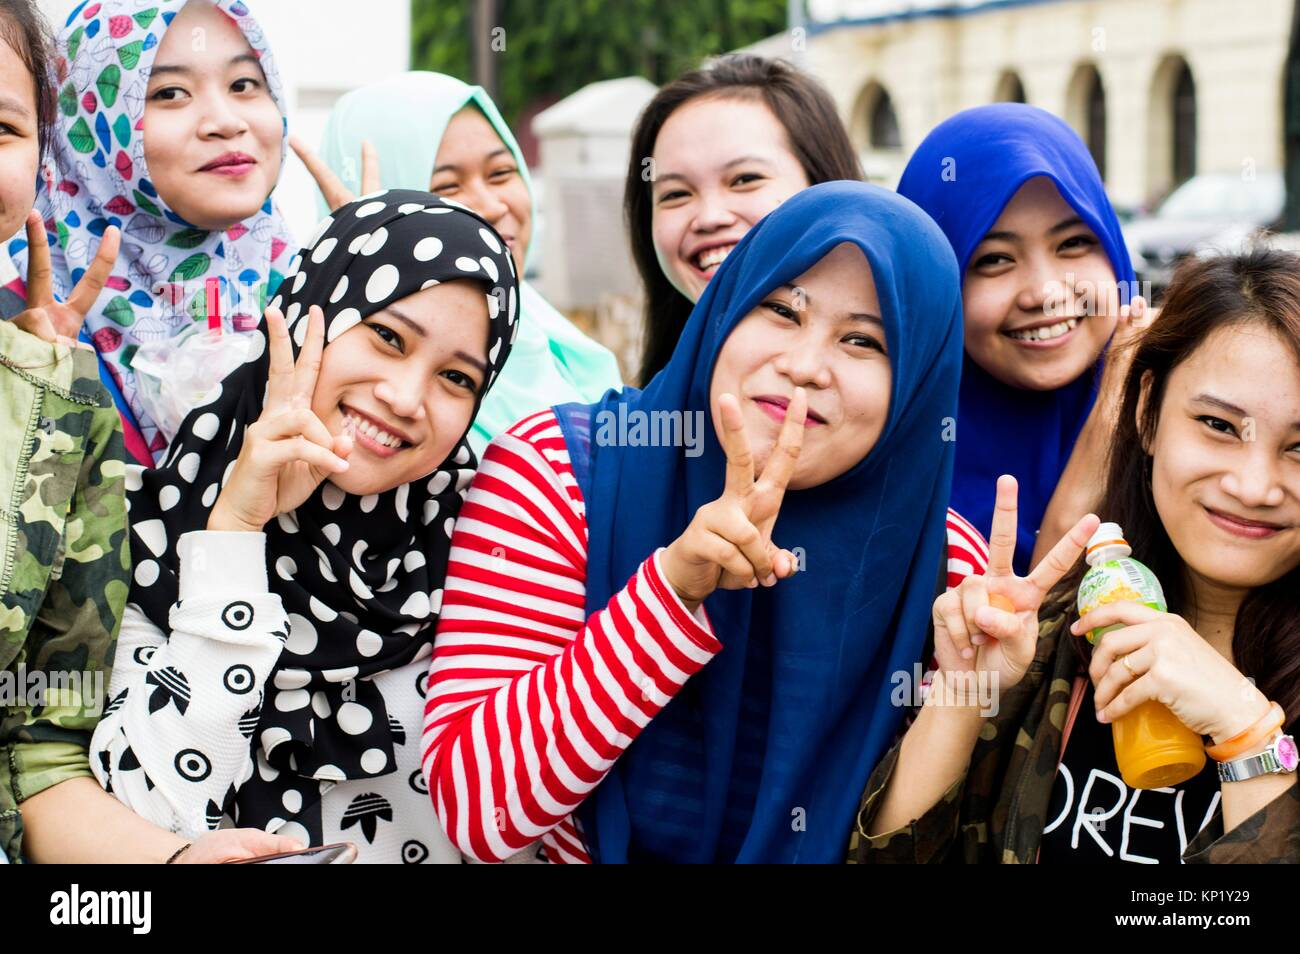 prai muslim girl personals Muslim dating is not always easy – that's why elitesingles is here to help meet marriage-minded single muslims and find your match here.